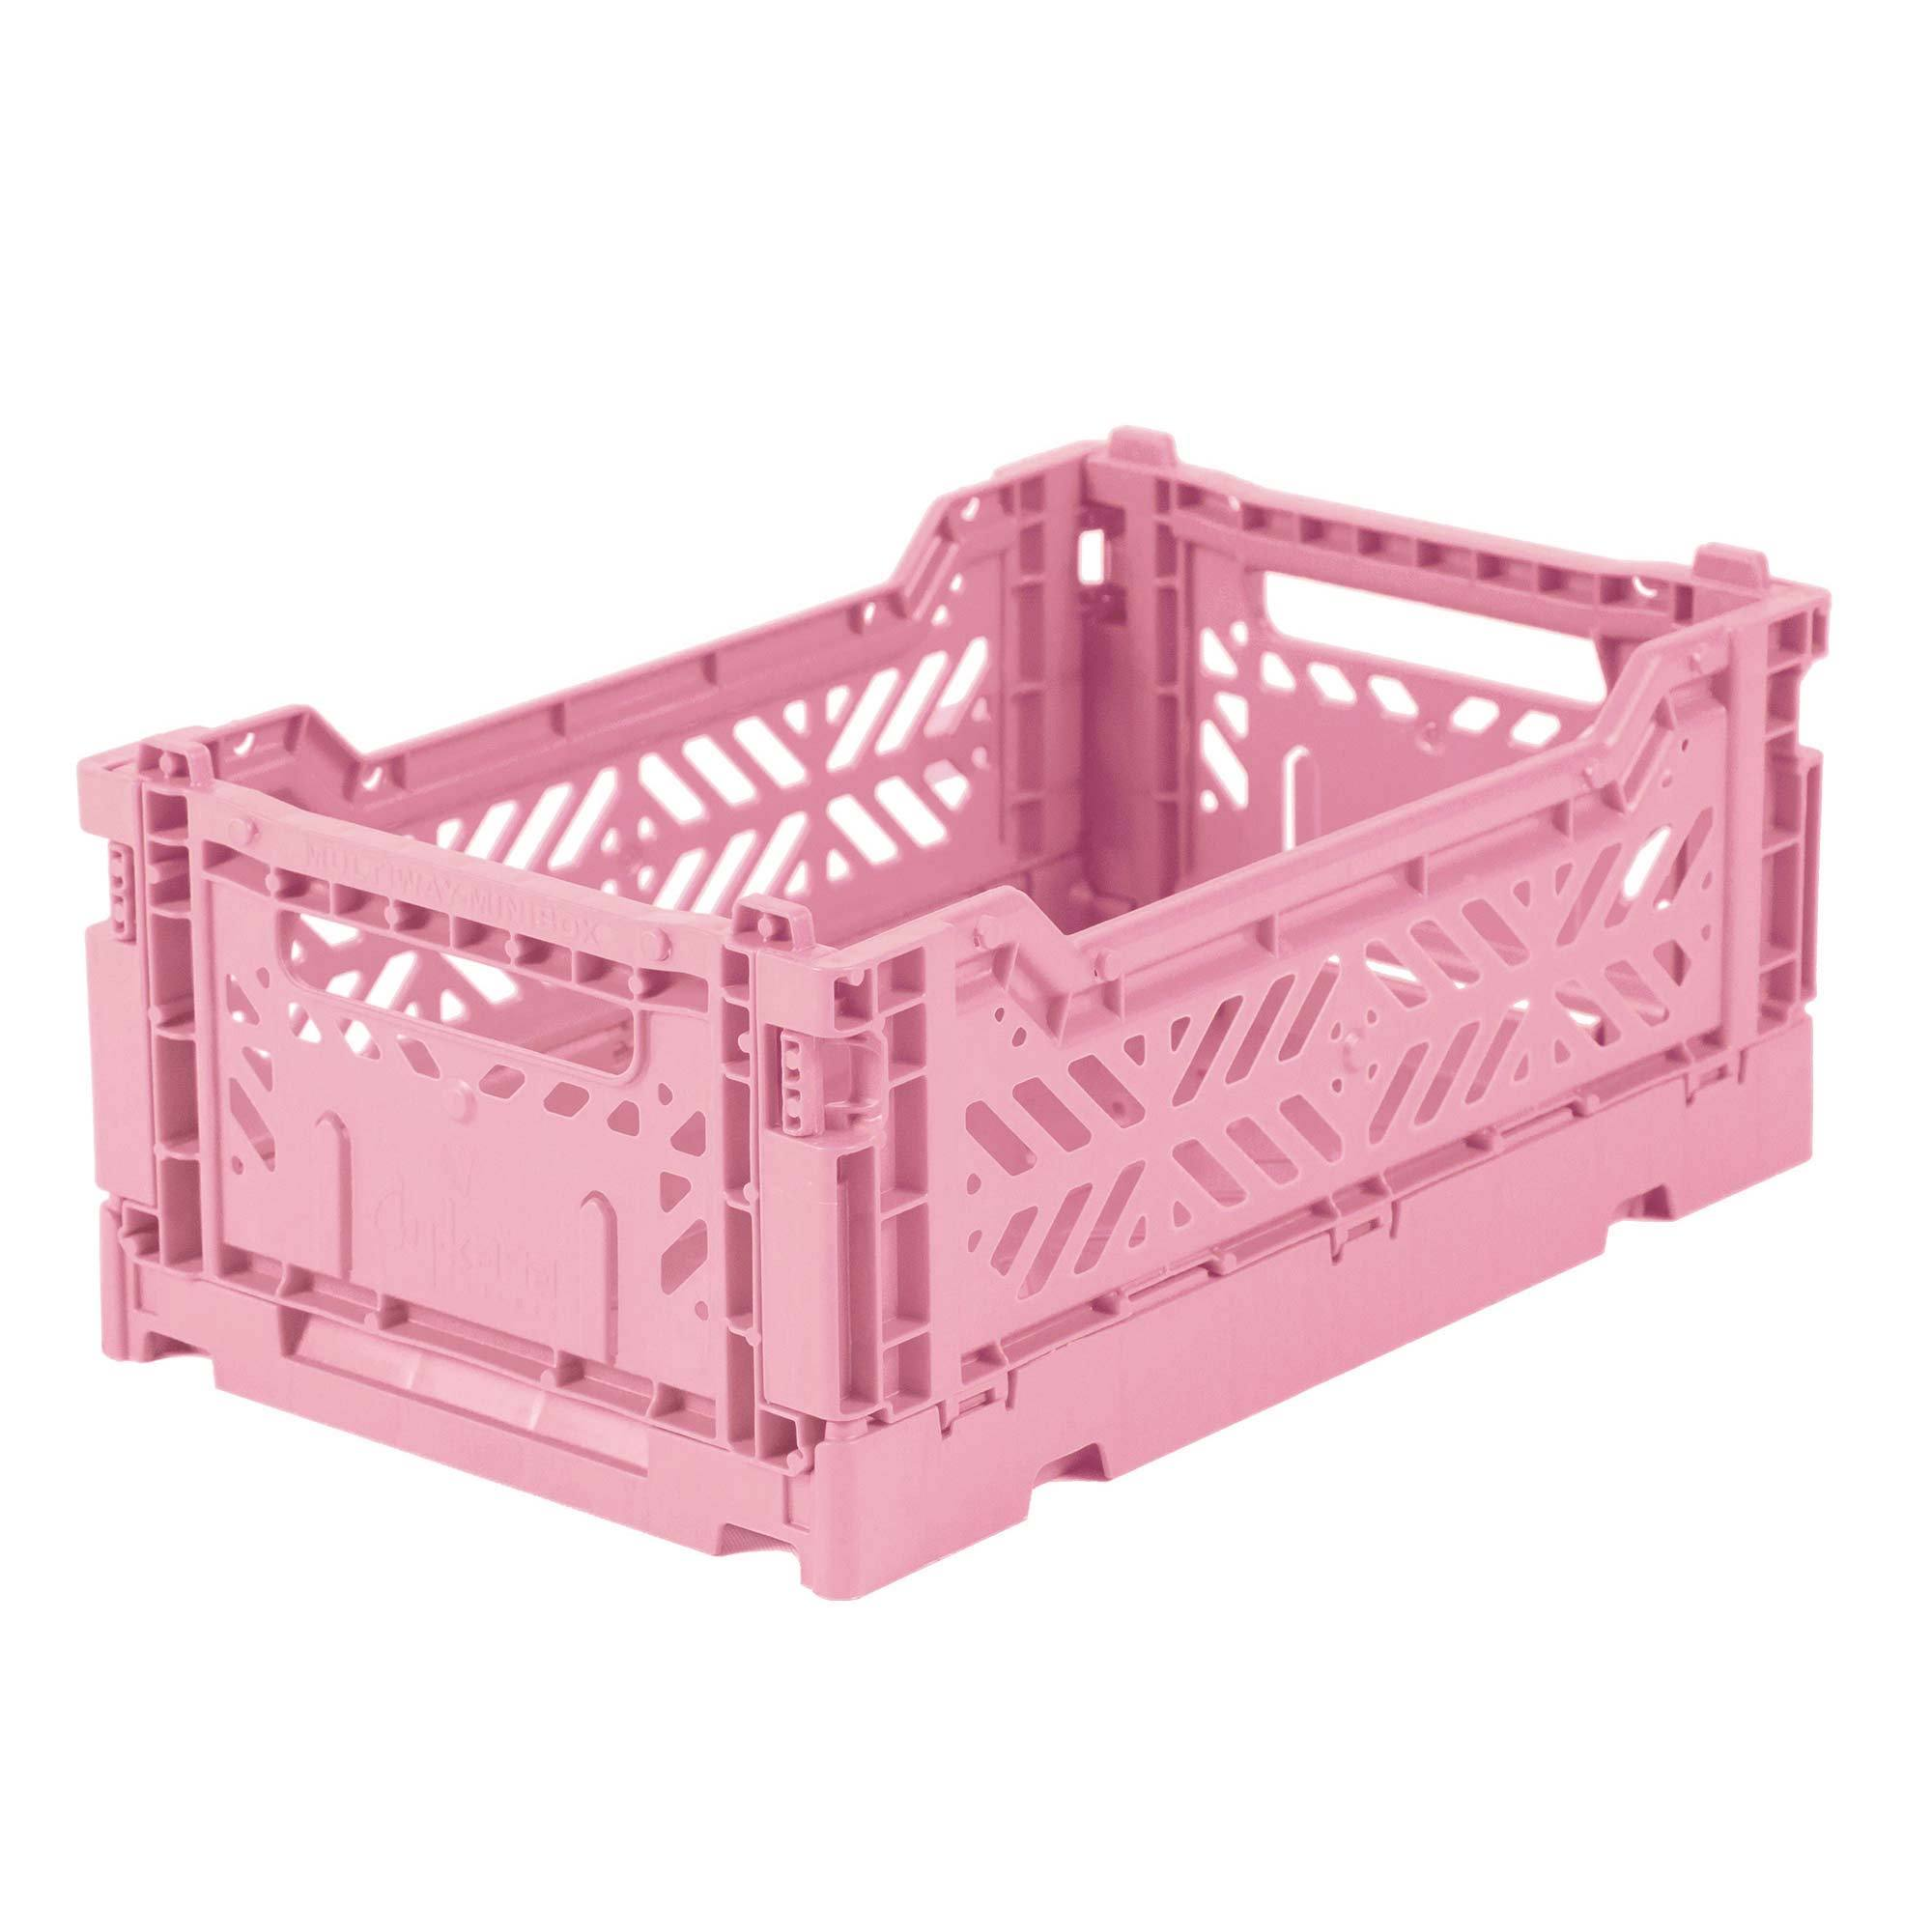 Aykasa Mini Folding Crate (Baby Pink) - SECOND